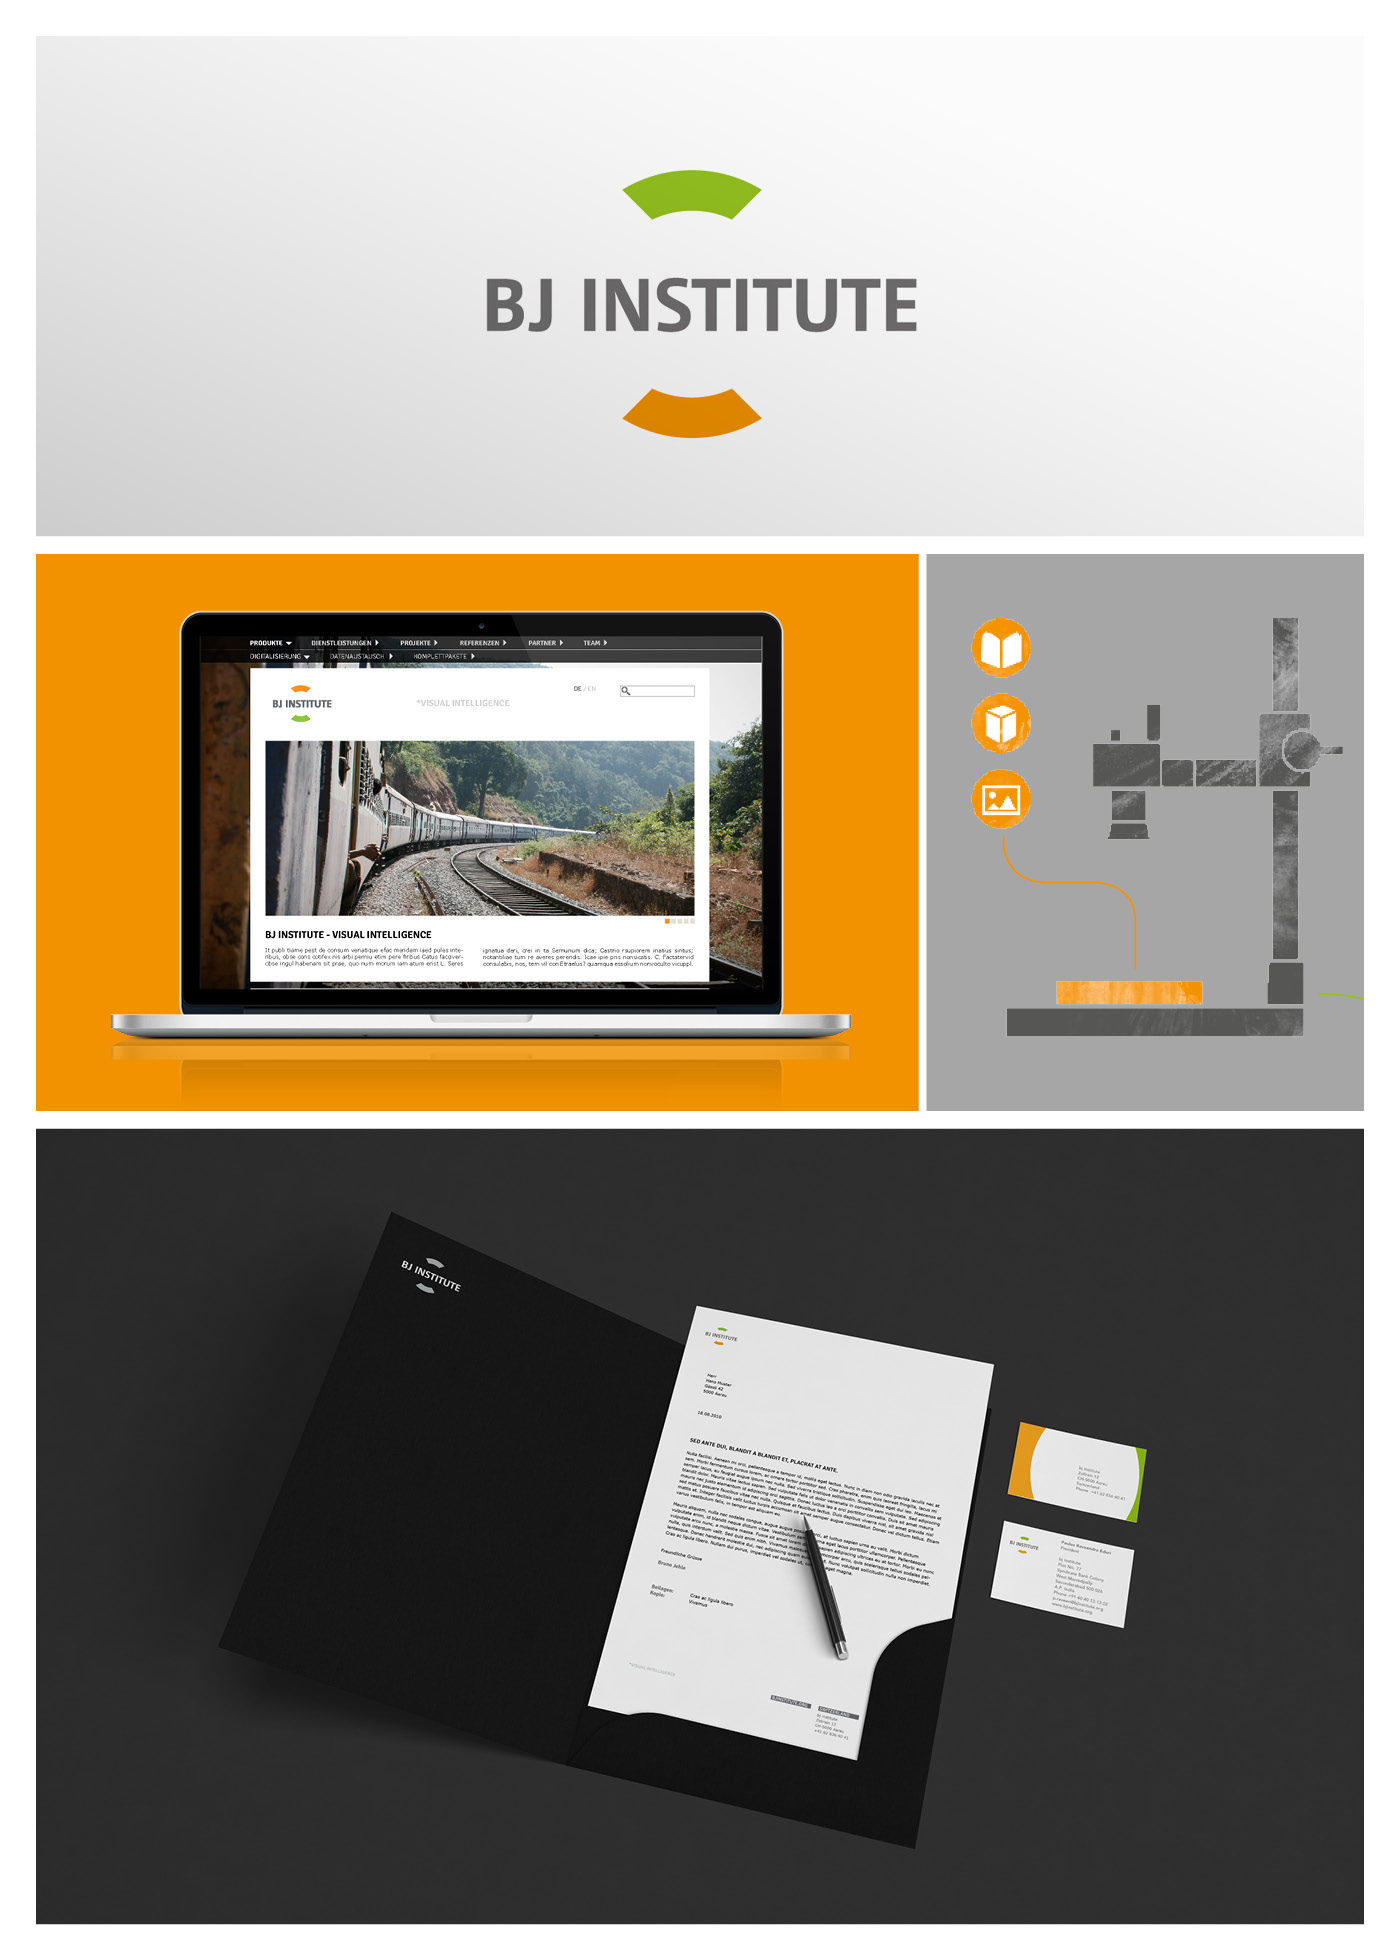 bjinstitute bruno jehle india switzerland